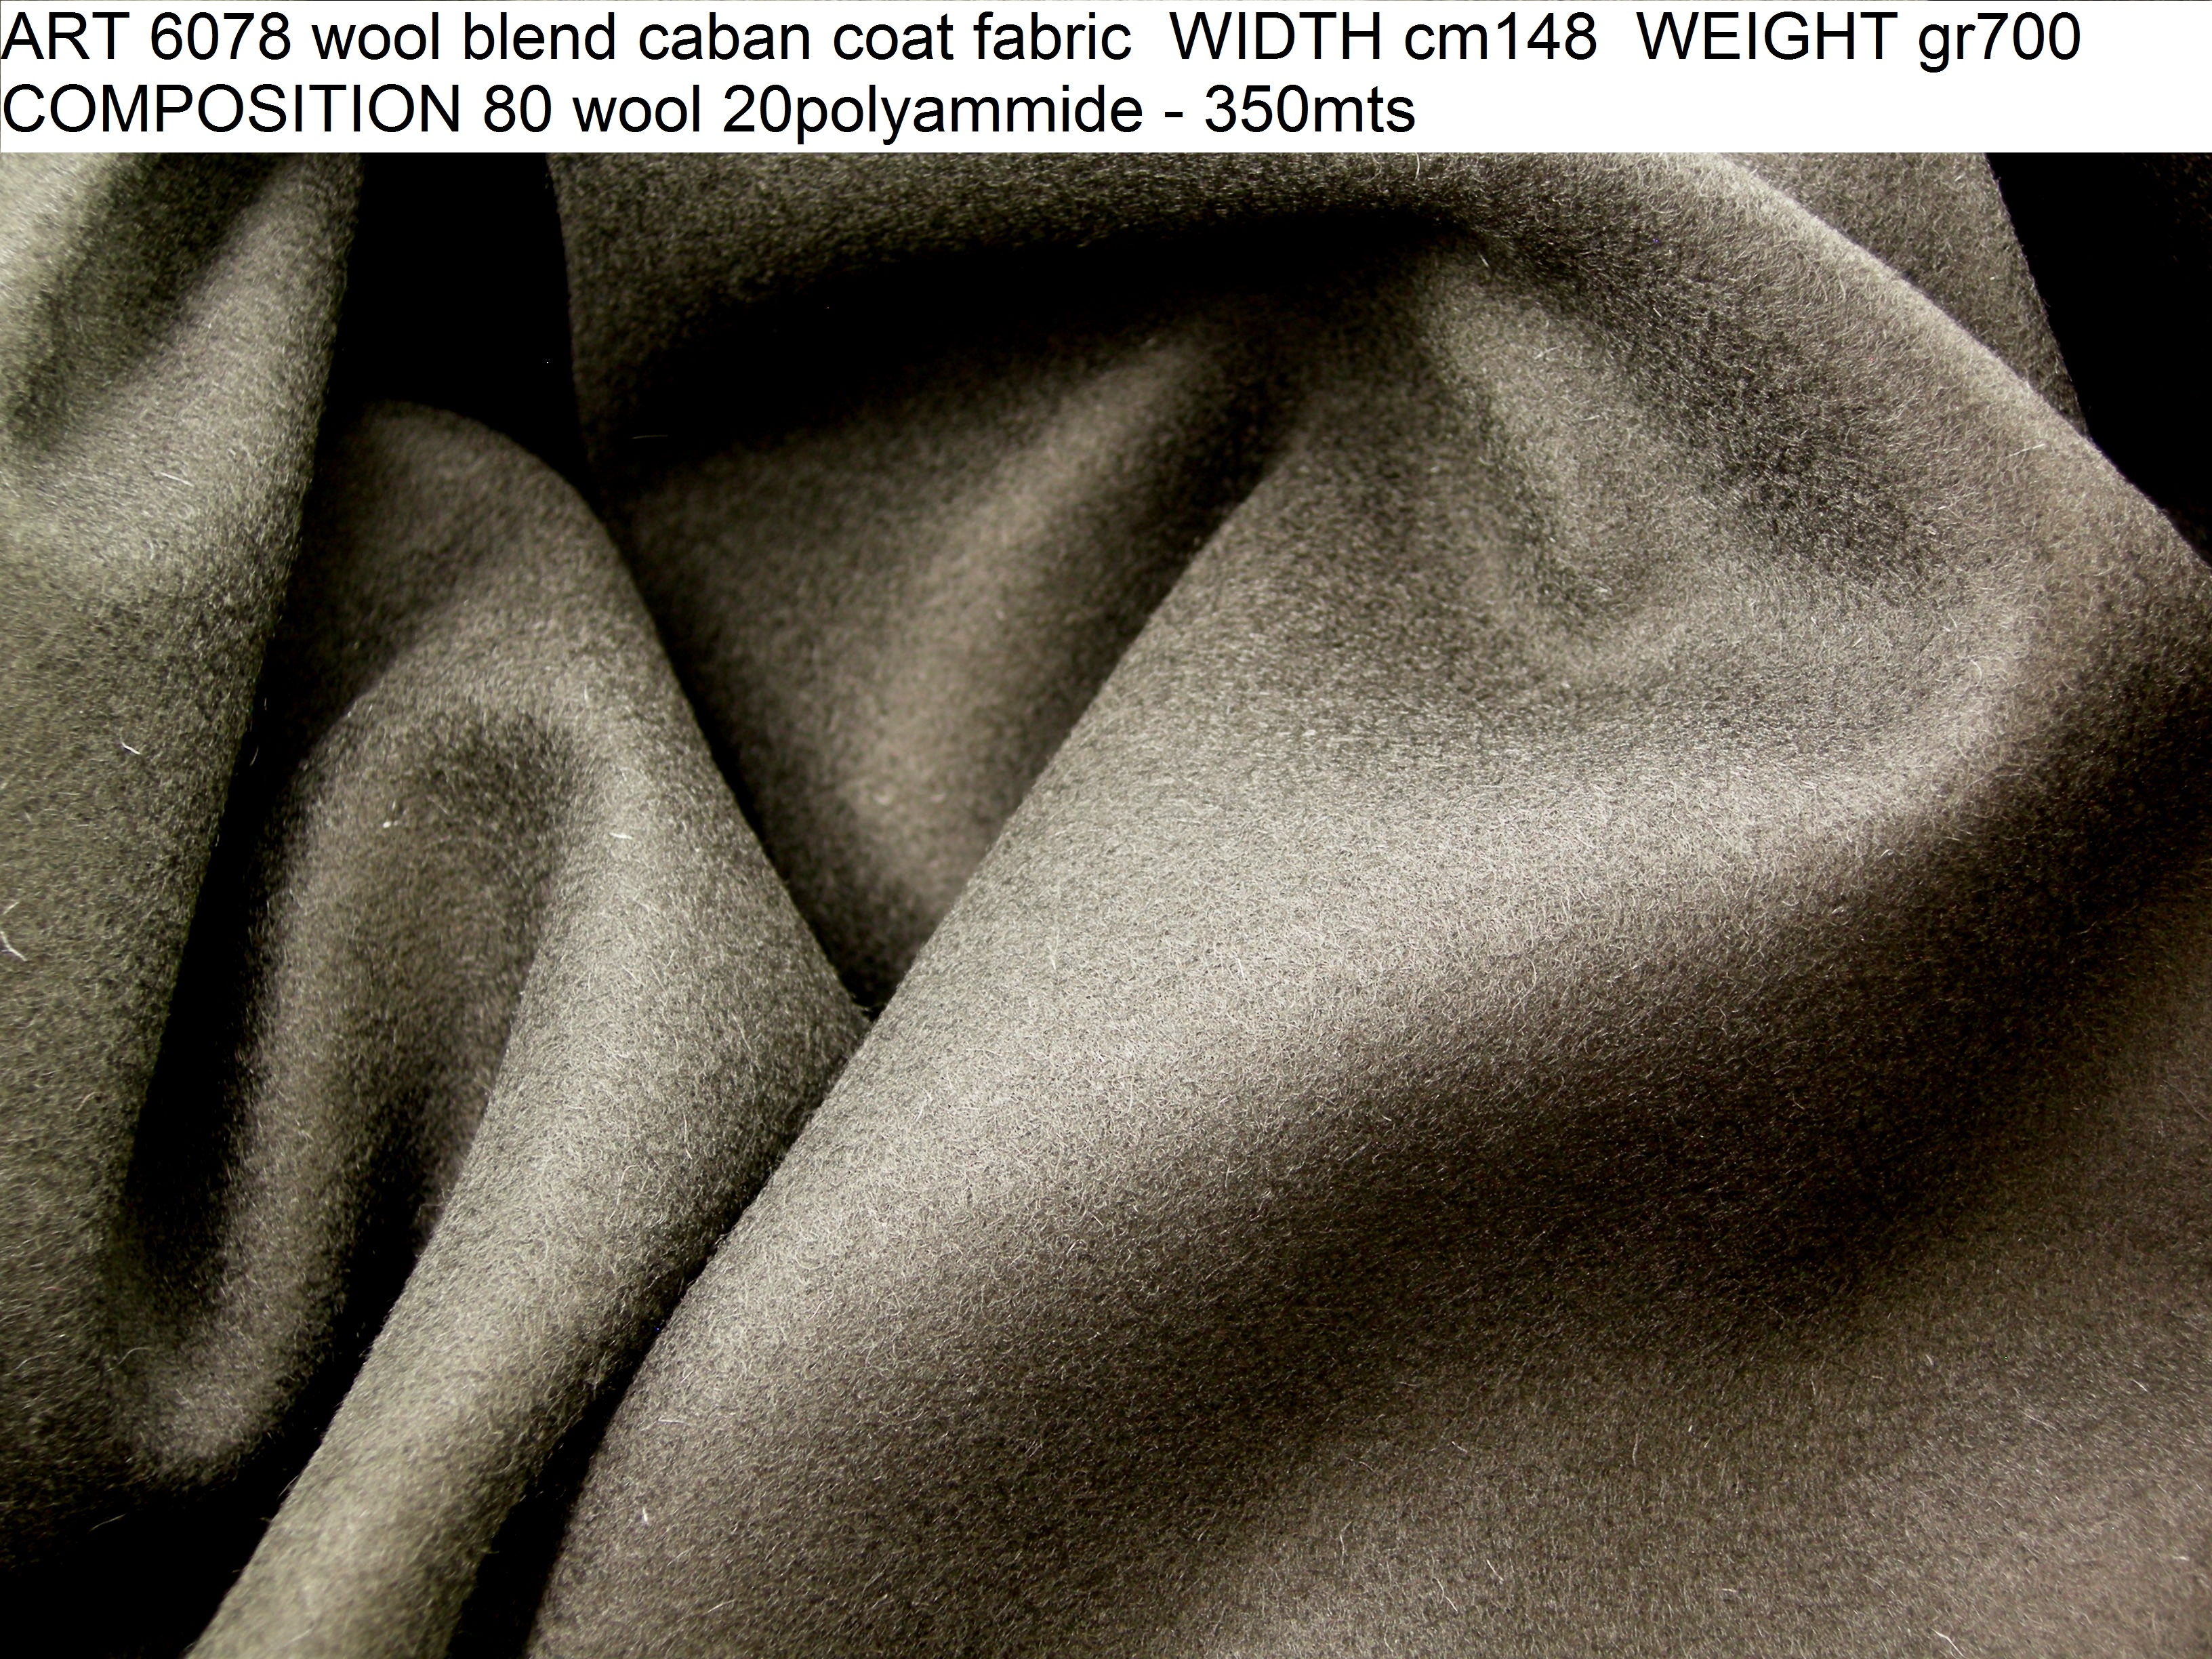 ART 6078 wool blend caban coat fabric WIDTH cm148 WEIGHT gr700 COMPOSITION 80 wool 20polyammide - 350mts